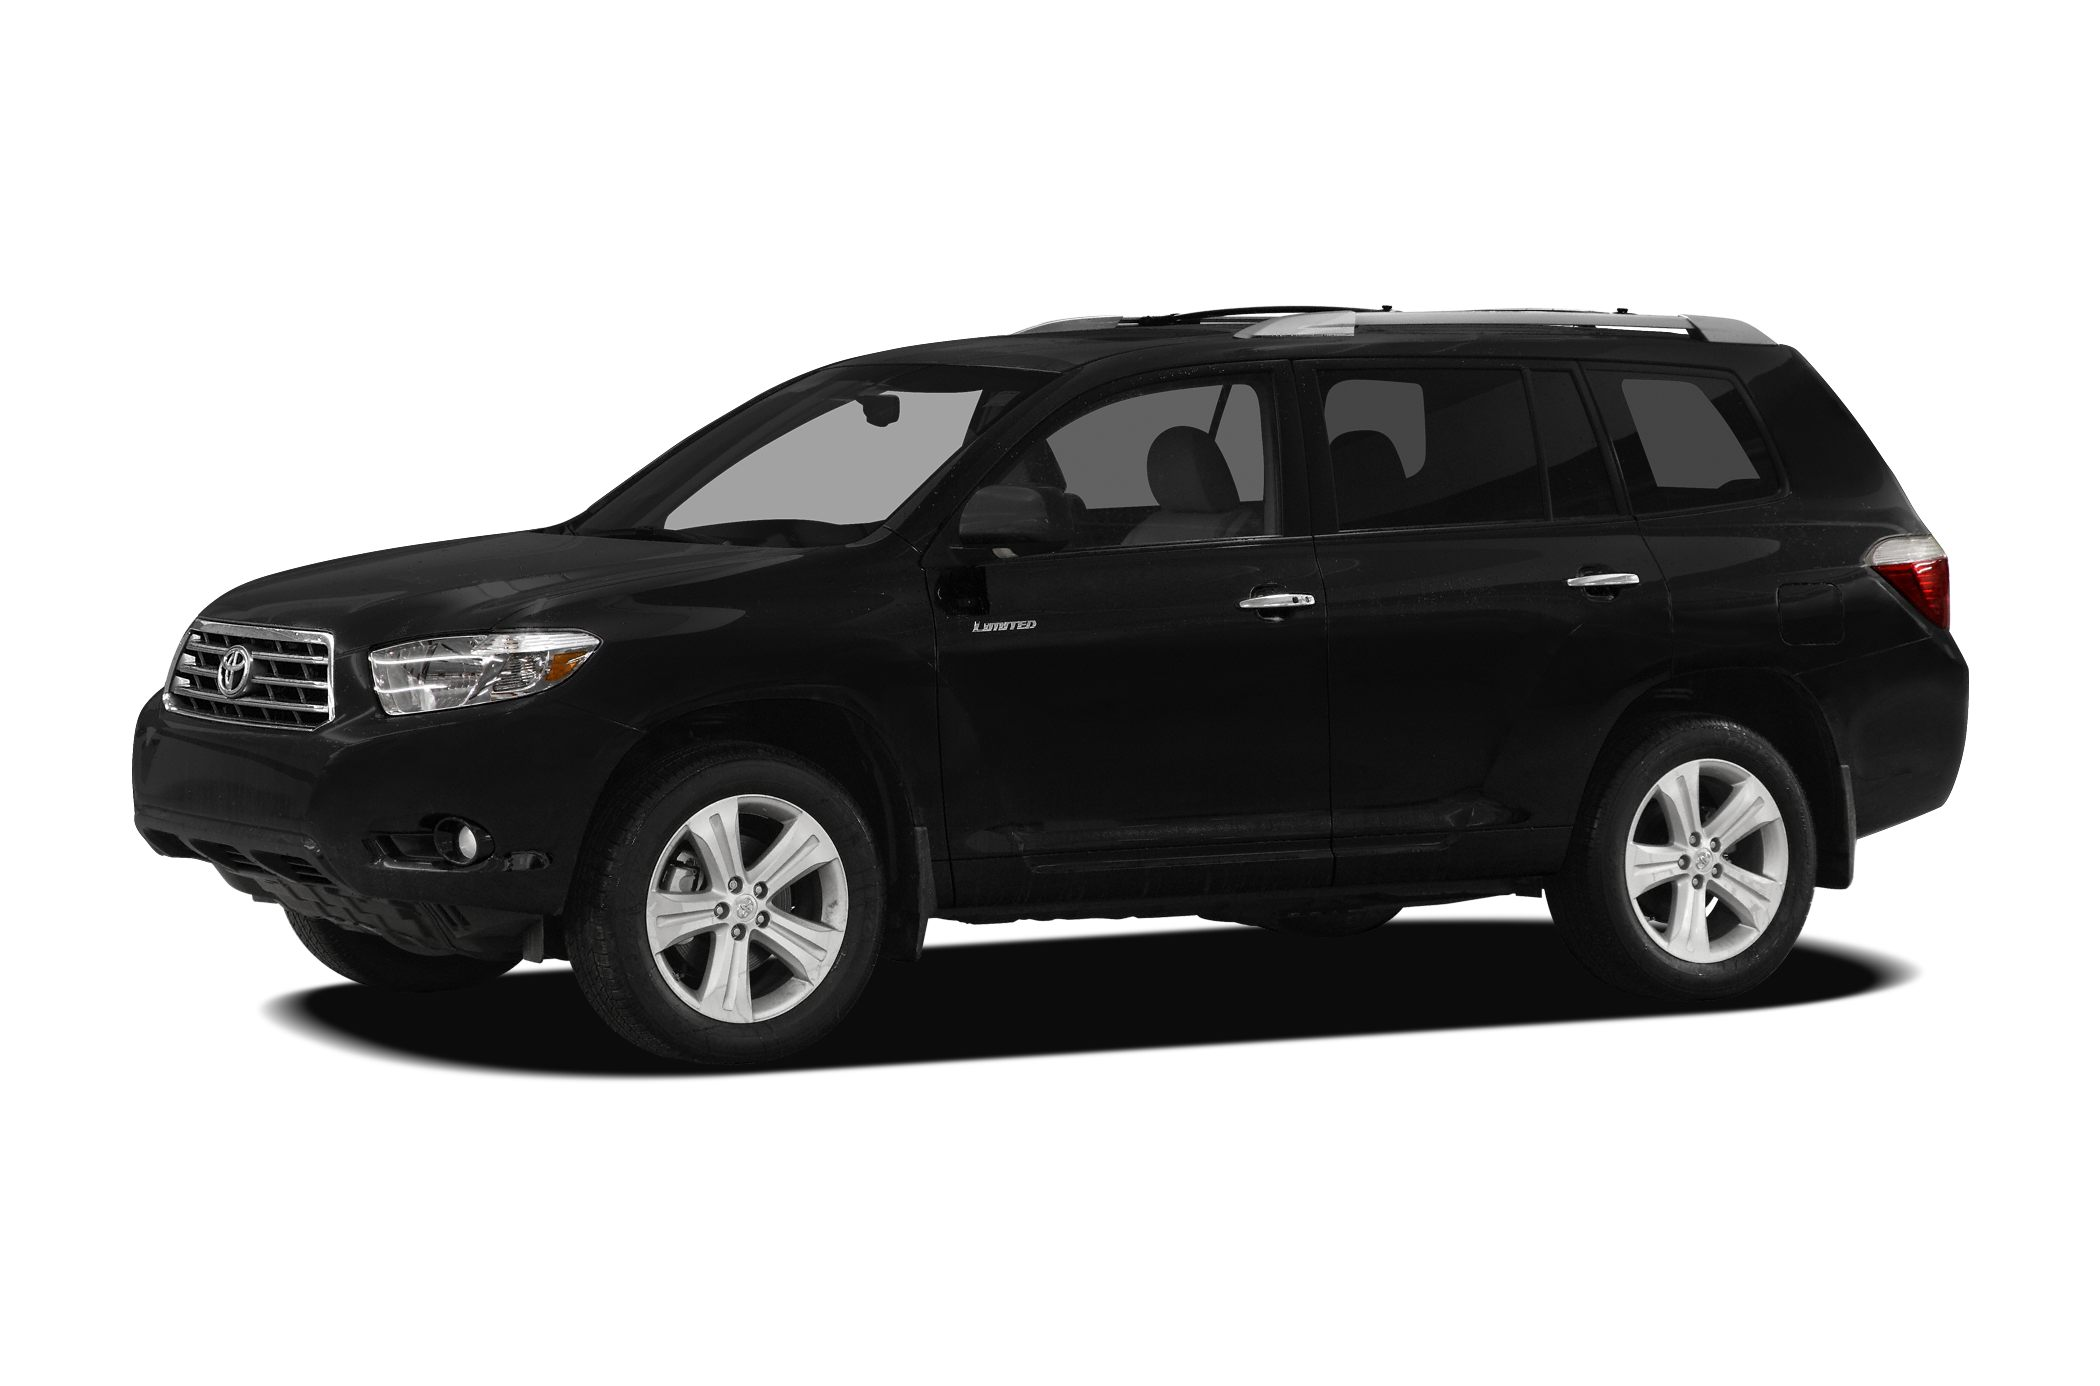 2010 Toyota Highlander Limited 35L V6 SMPI DOHC and AWD Dynamic ride for a dynamic driver Agree